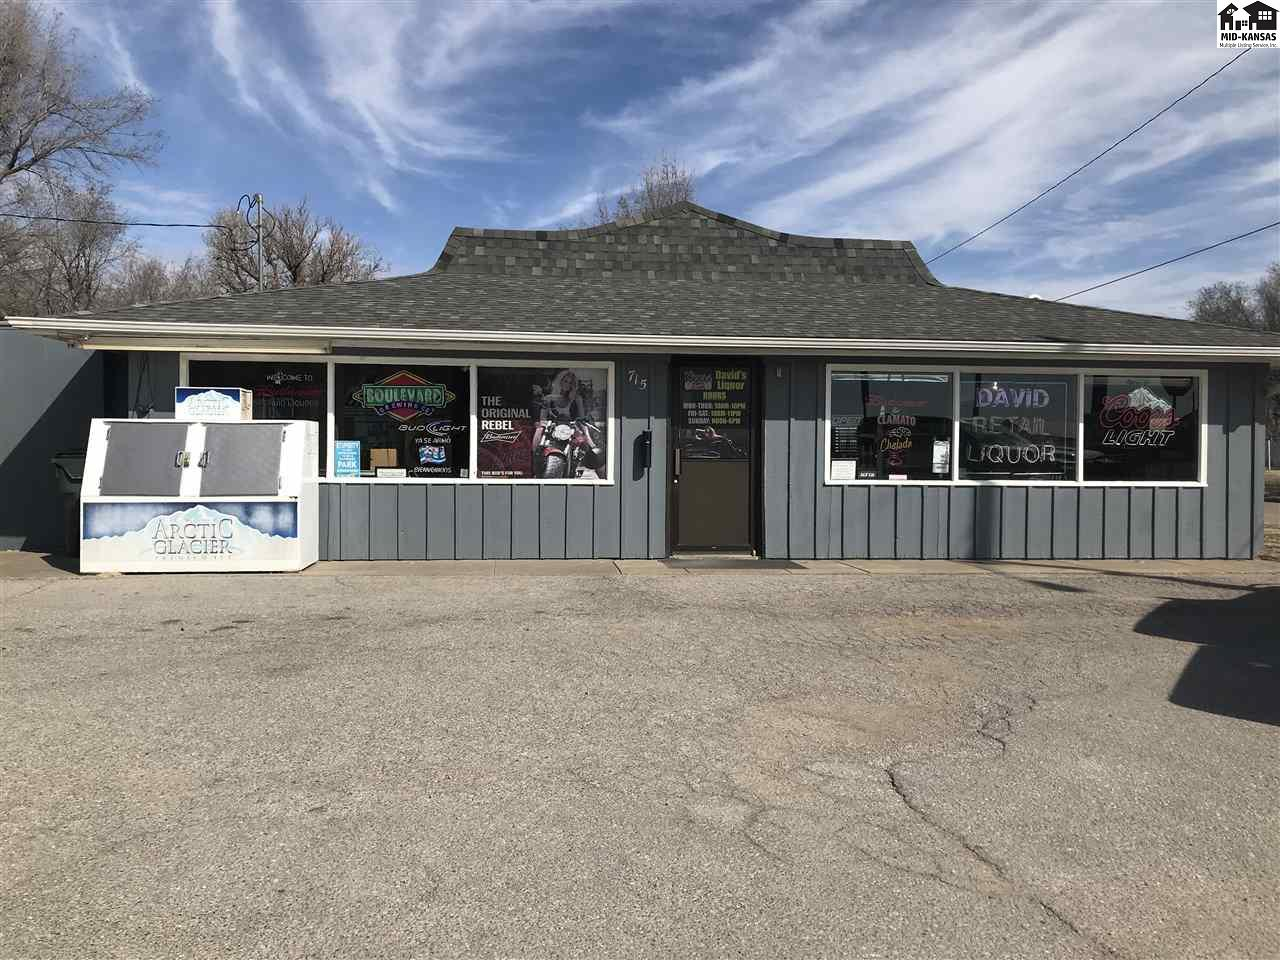 If you want to have your prices set and hours set, this is an opportunity for you!  This Retail Liquor Store sits on the East Edge of town close to the Celebration Center and the Old Skating Rink, would be close to get more beverages quickly for events being held there.  The purchase included all inventory (which changes, but could narrow the value down at time of purchase) all new equipment added, building value and a small shed with a car port is included.  Great opportunity to become a business owner.